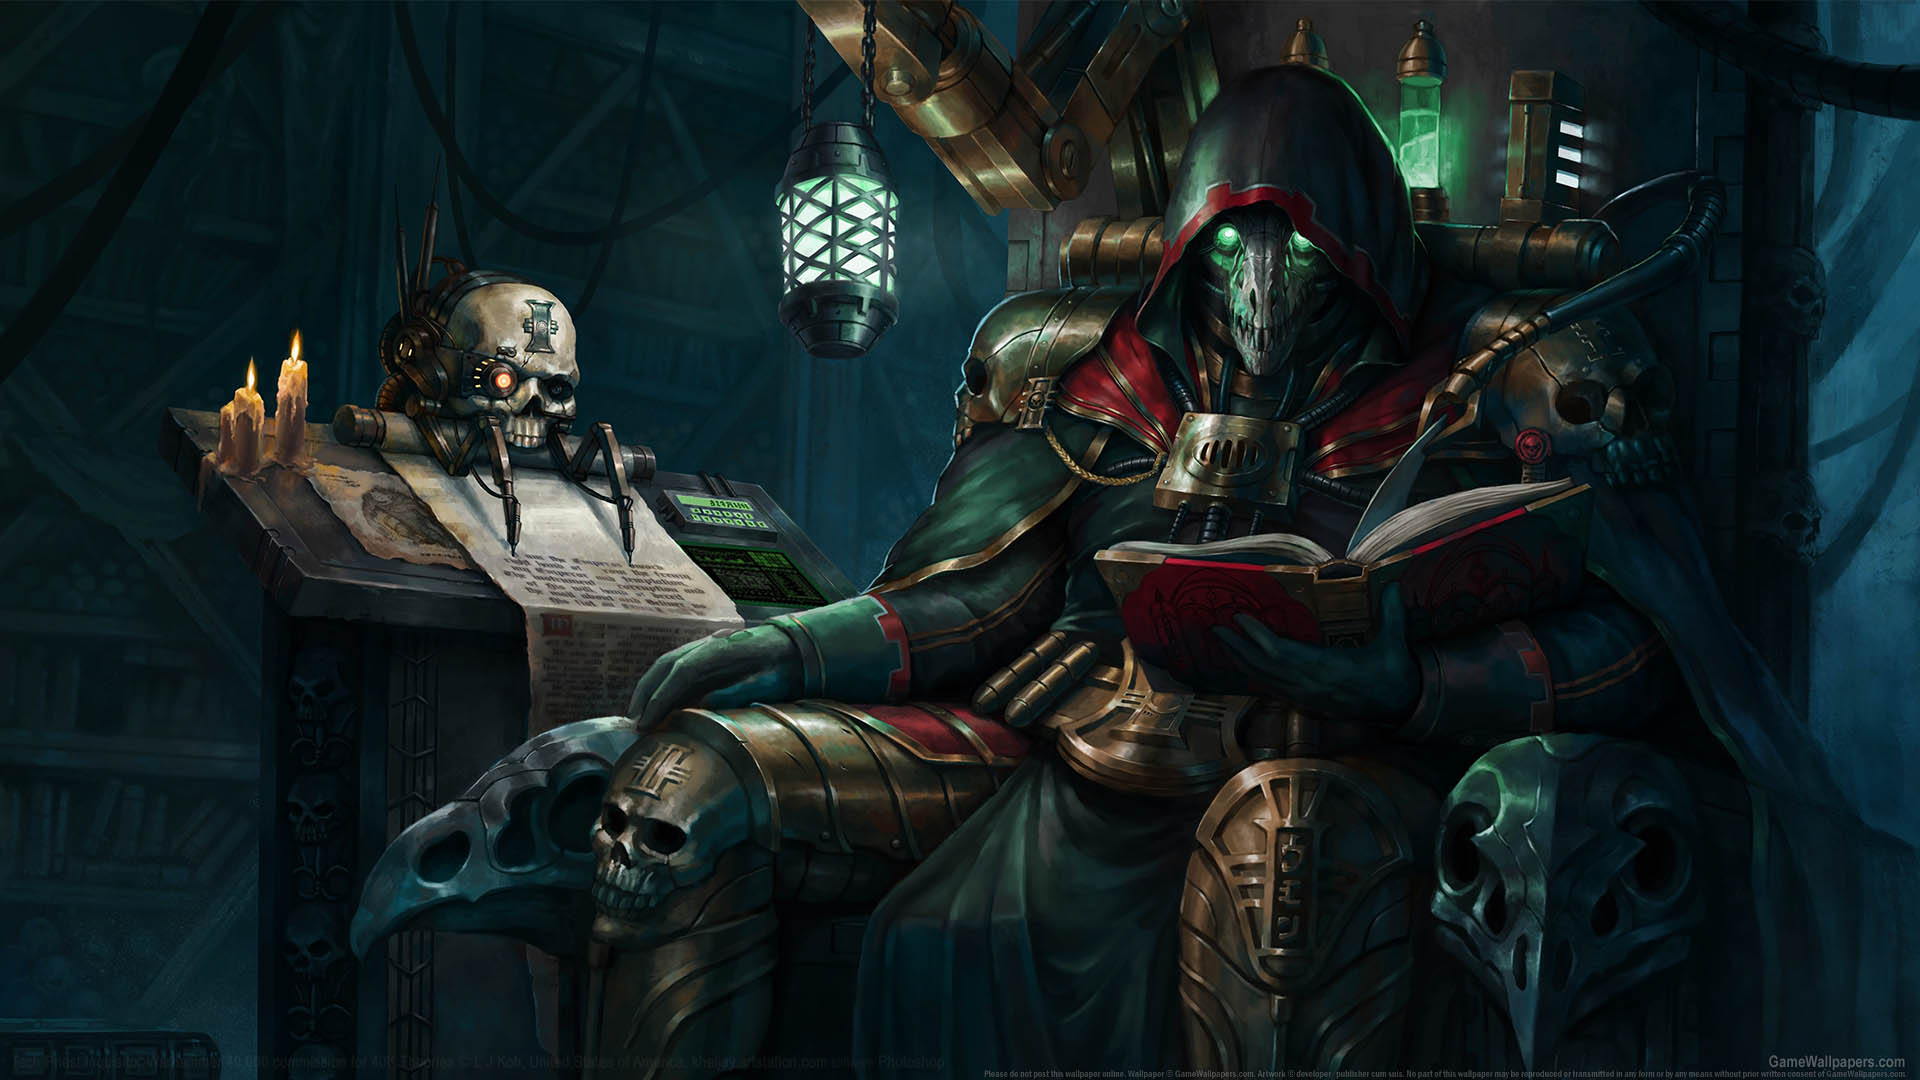 Warhammer 40,000 fan art wallpaper 01 1920x1080